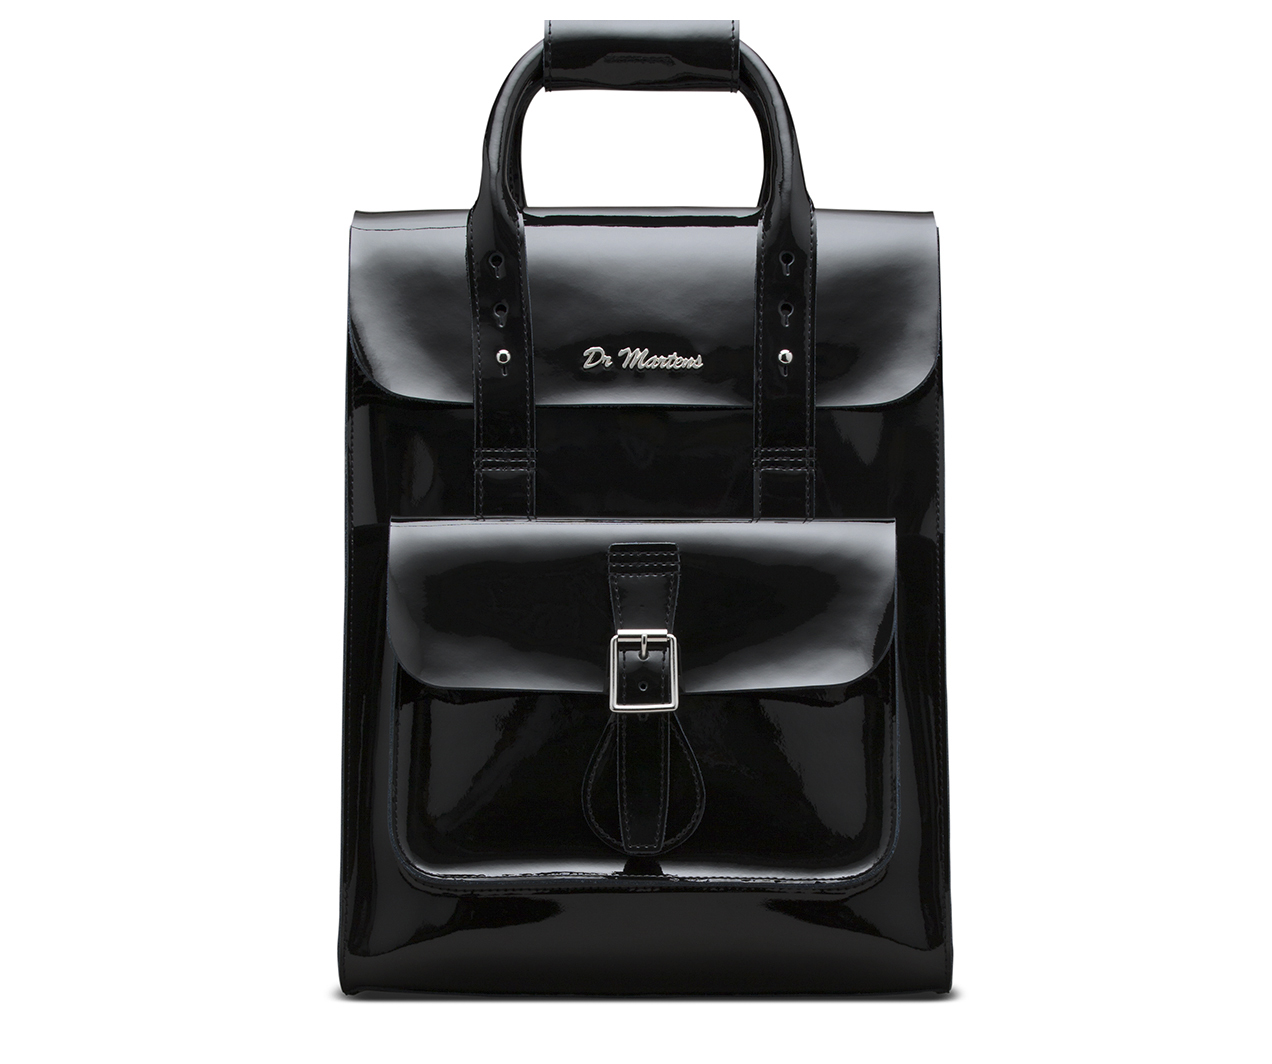 Patent Leather Backpack Bags Amp Satchels Official Dr